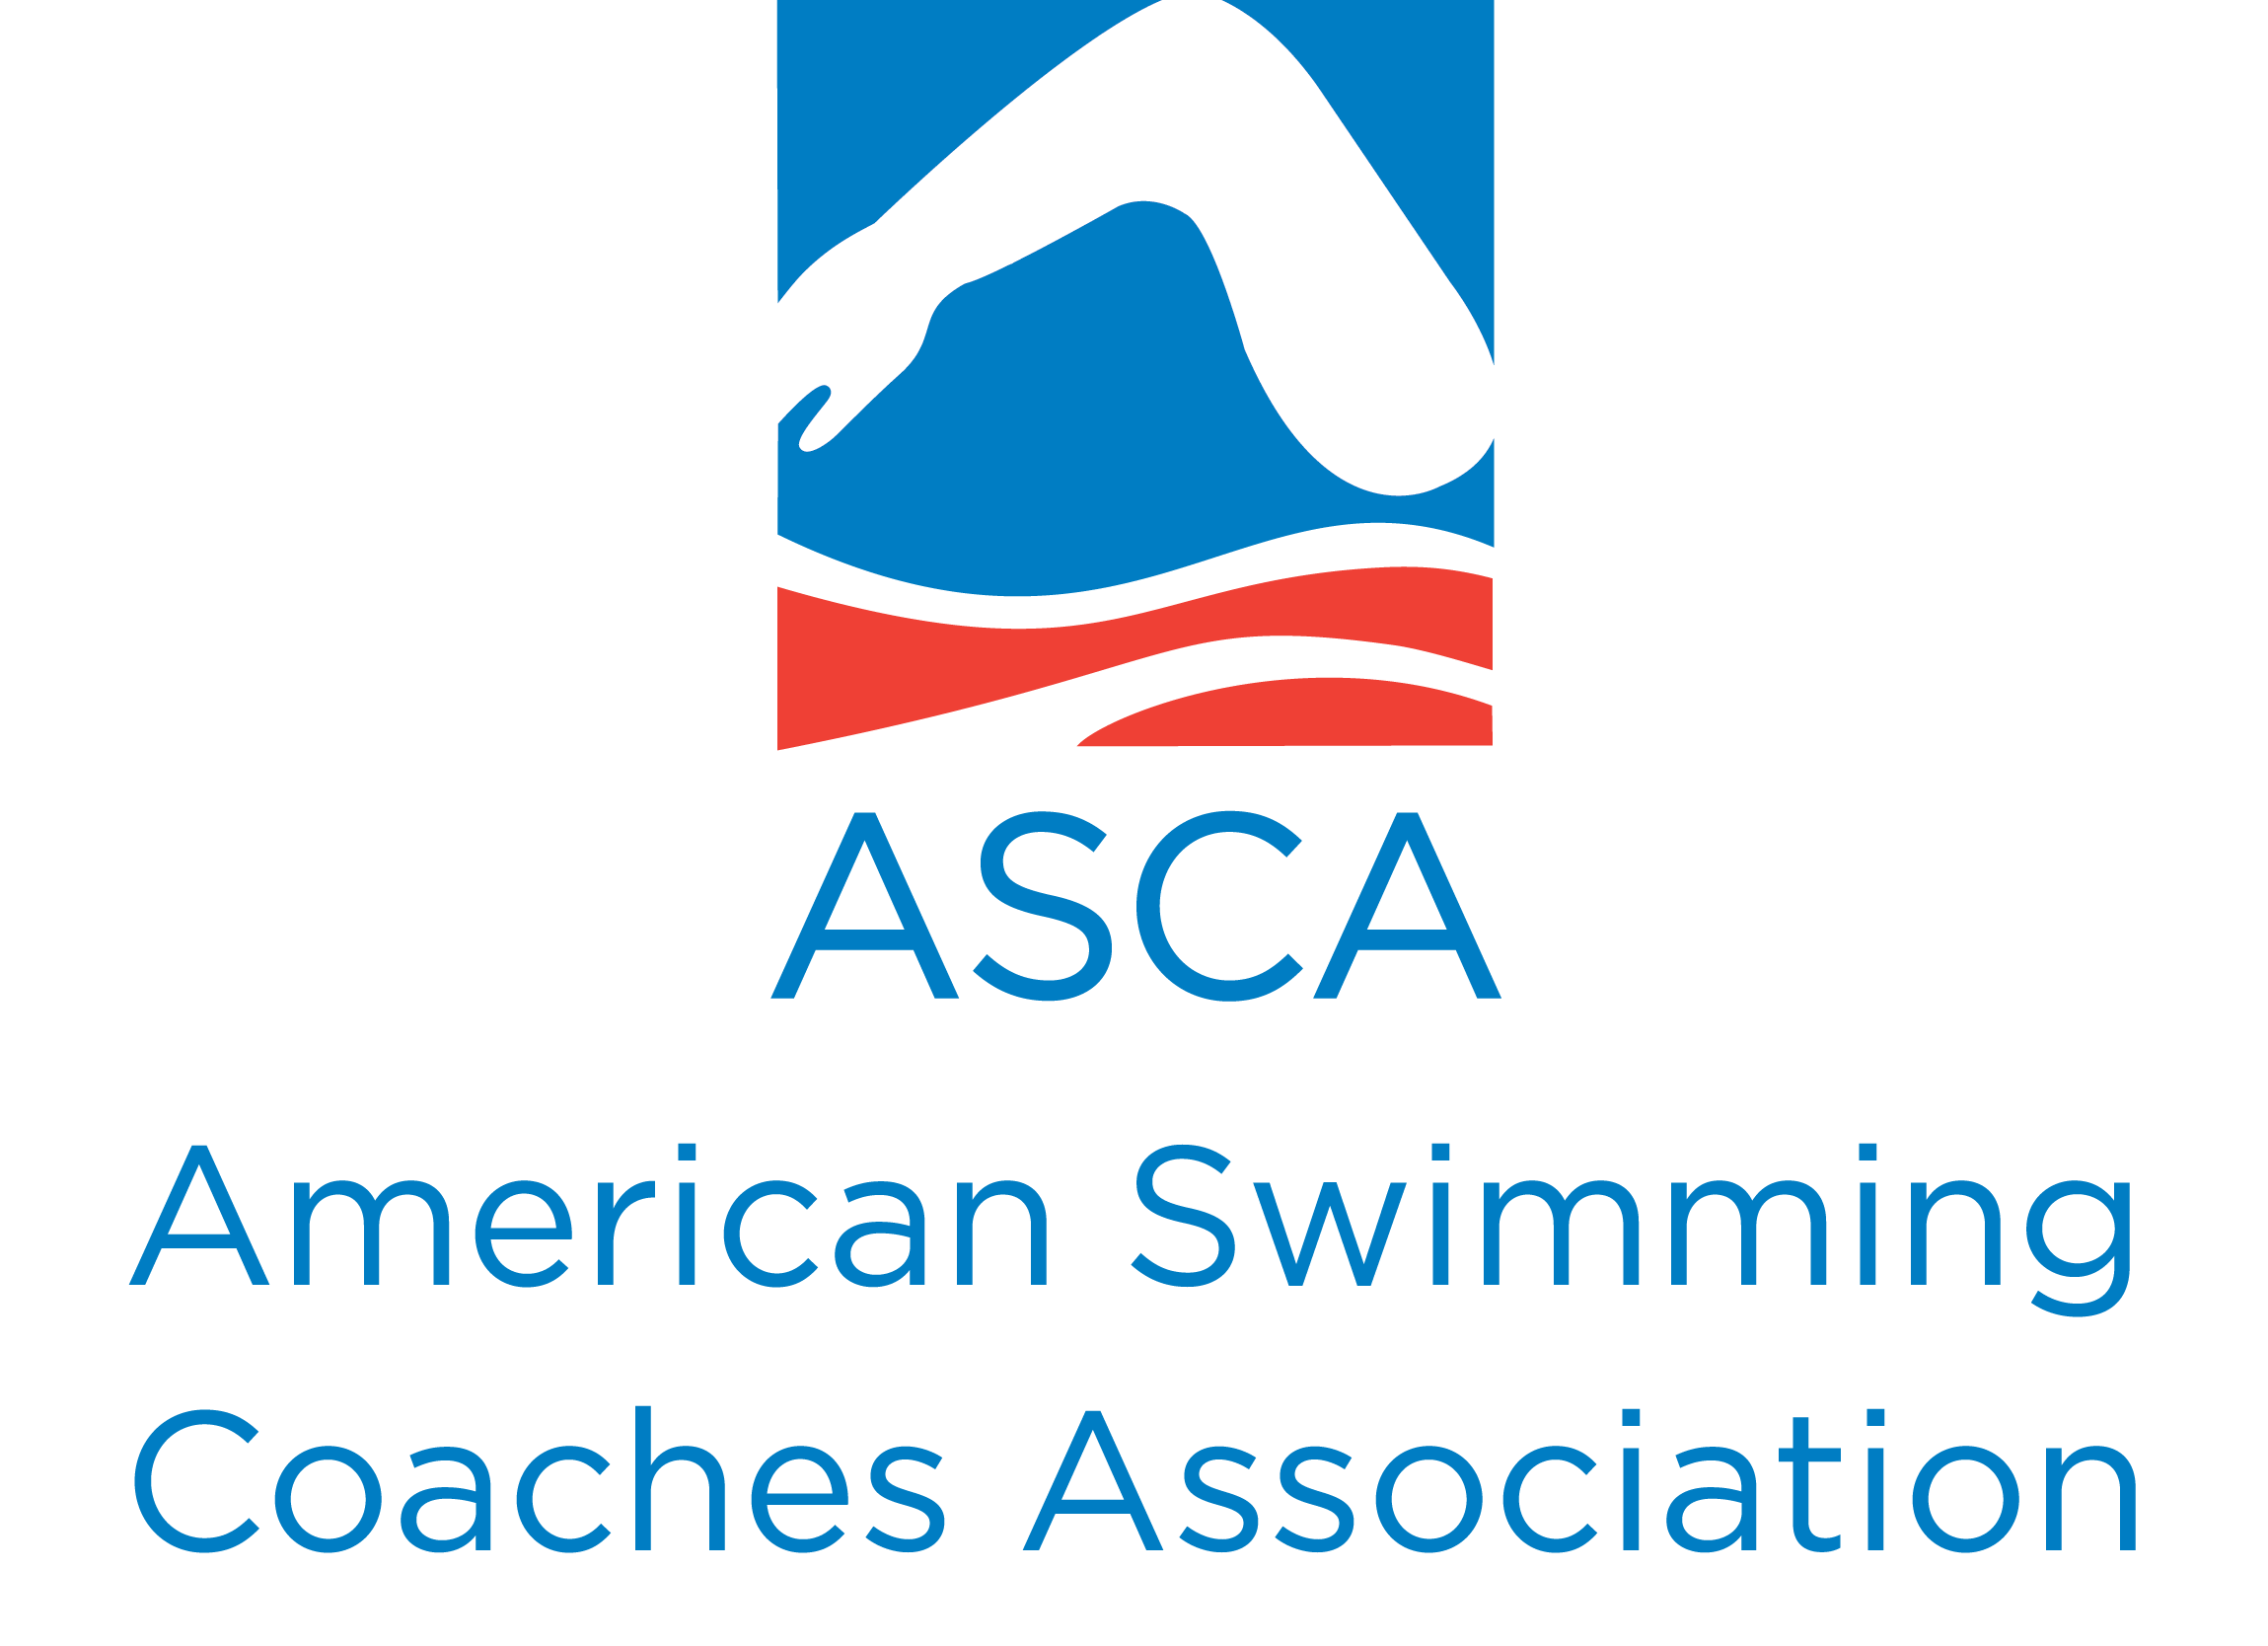 ASCA_LOGO_full_stacked_BLUE_compressed